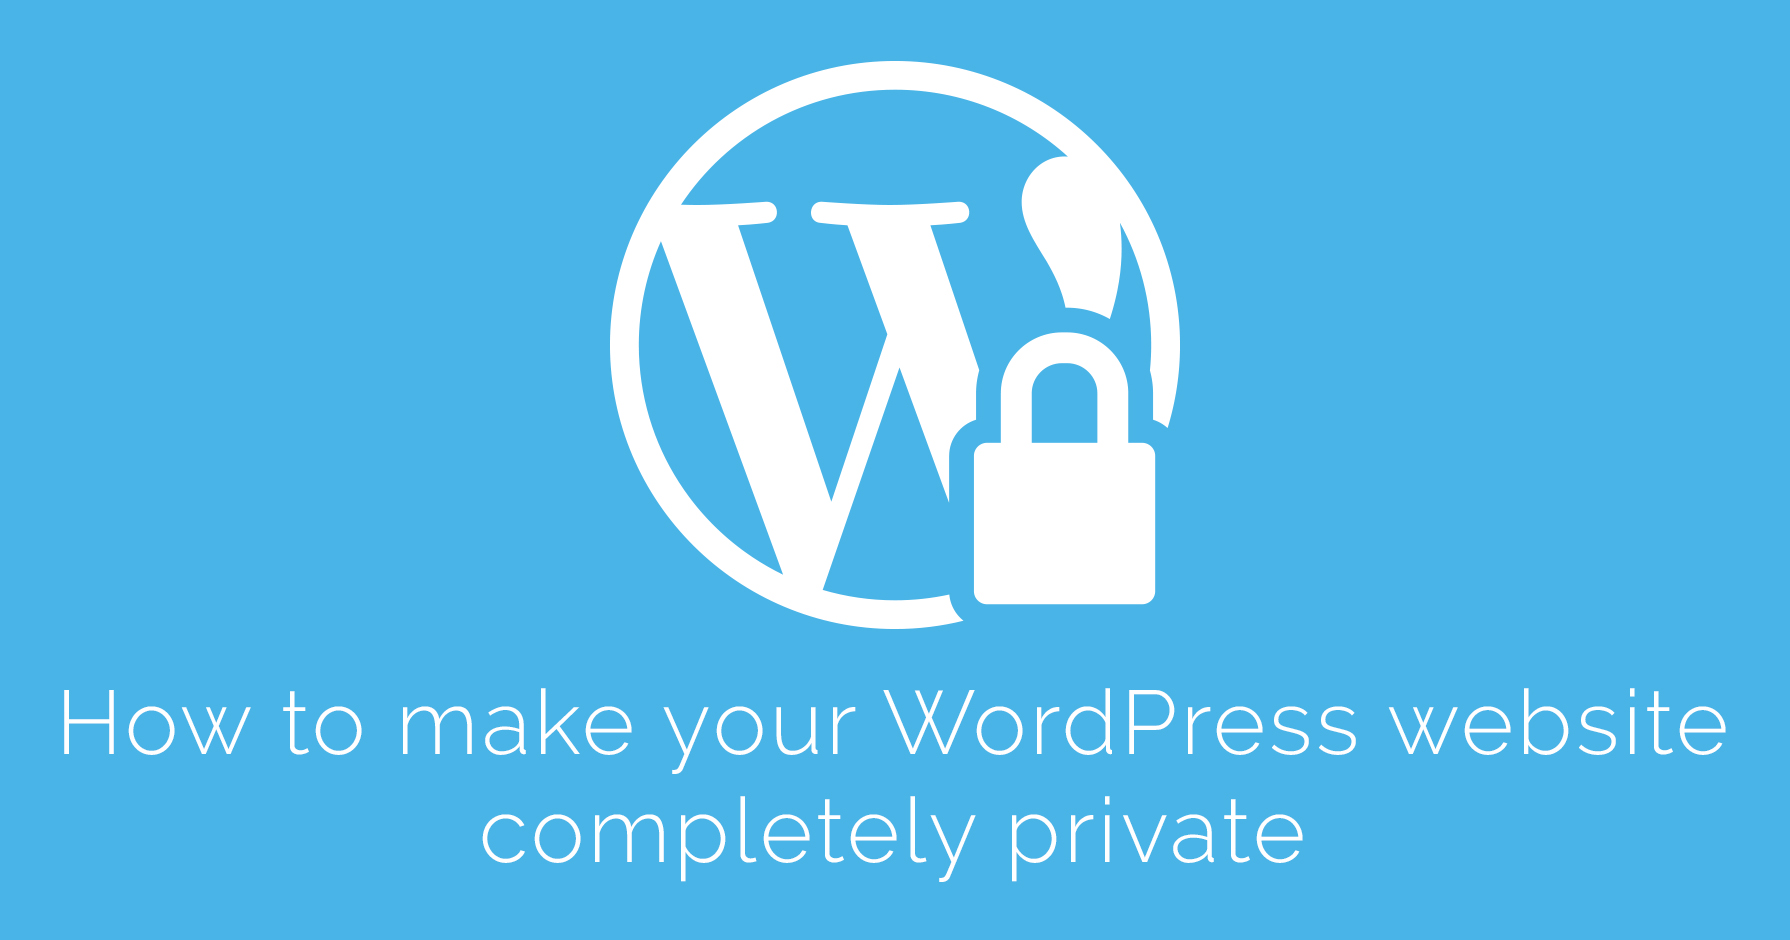 make your WordPress website completely private